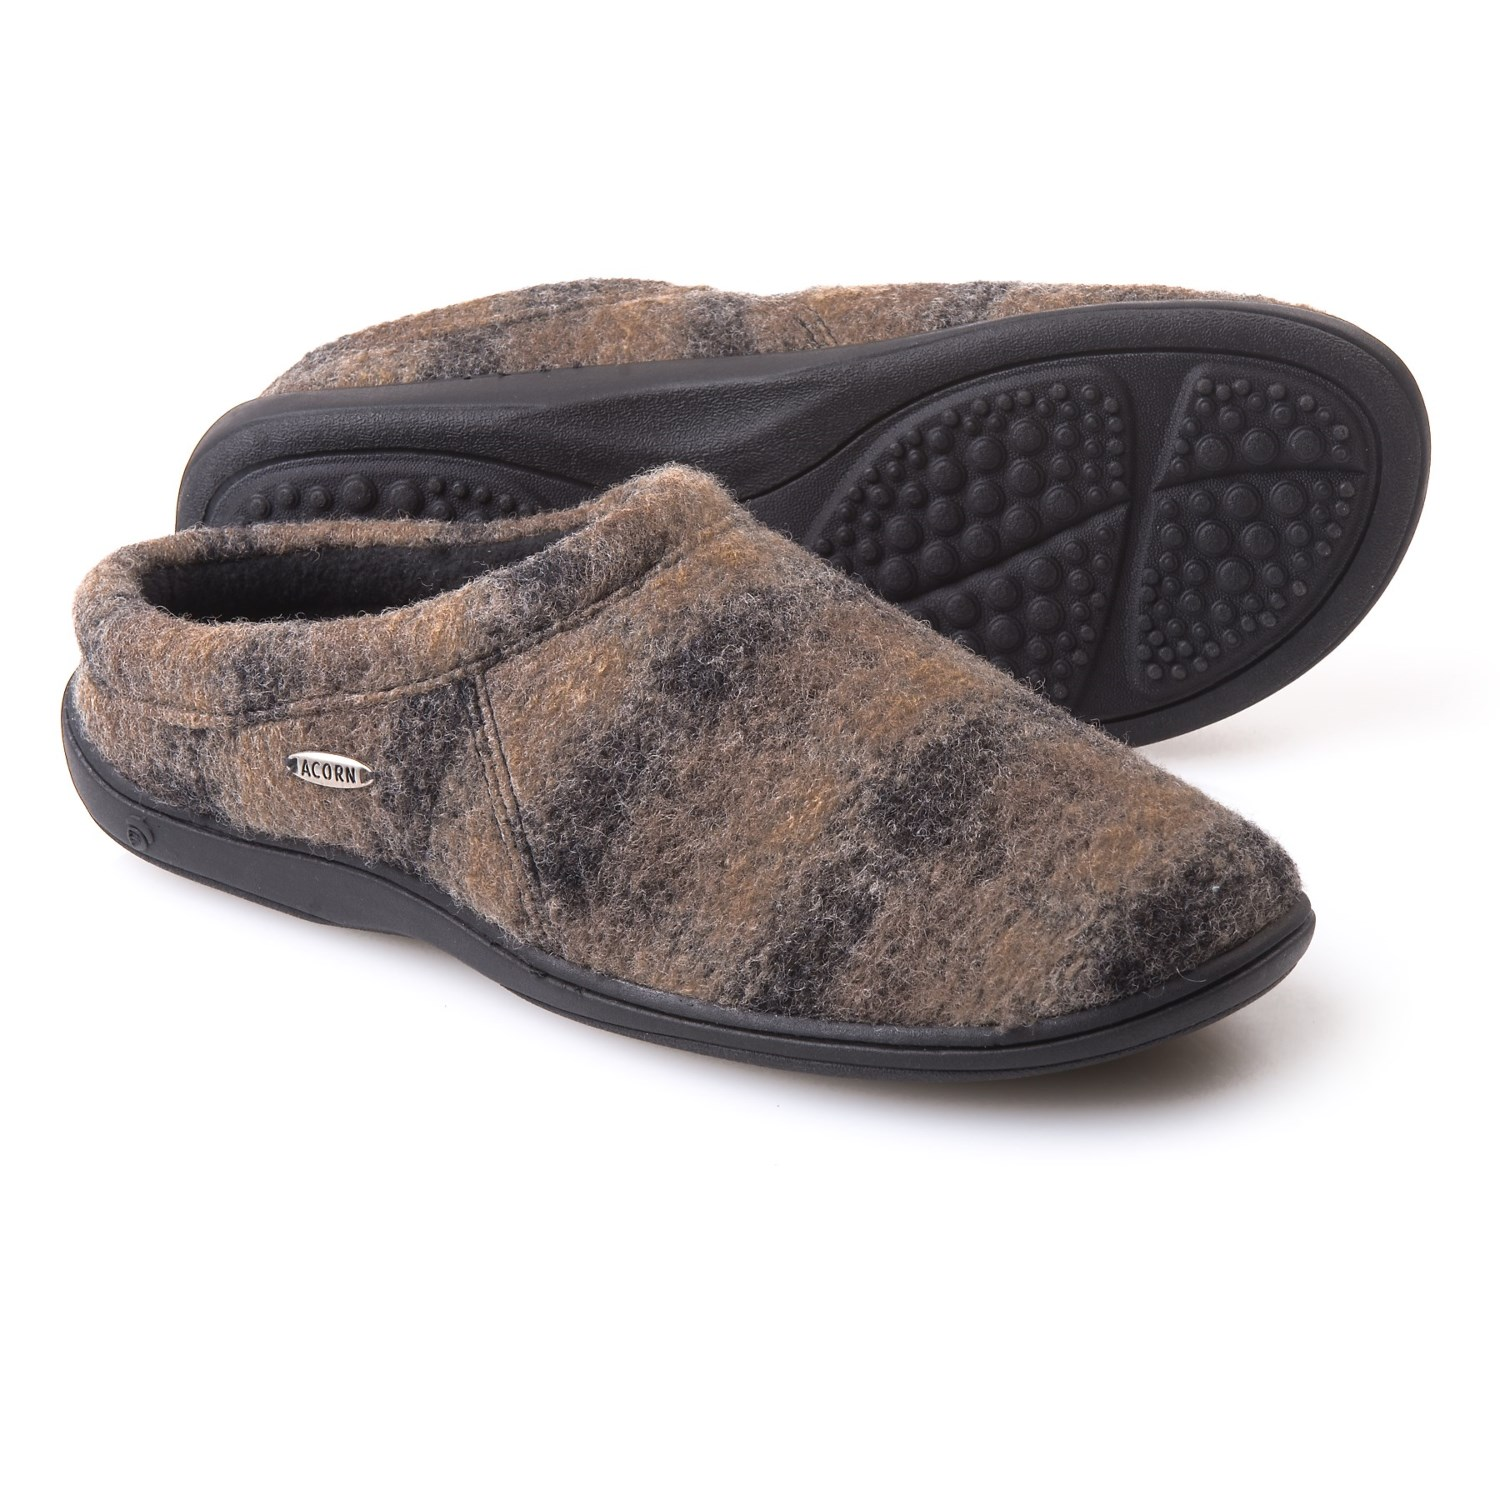 Acorn Digby Gore Slippers Wool Blend For Men In Driftwood Plaid